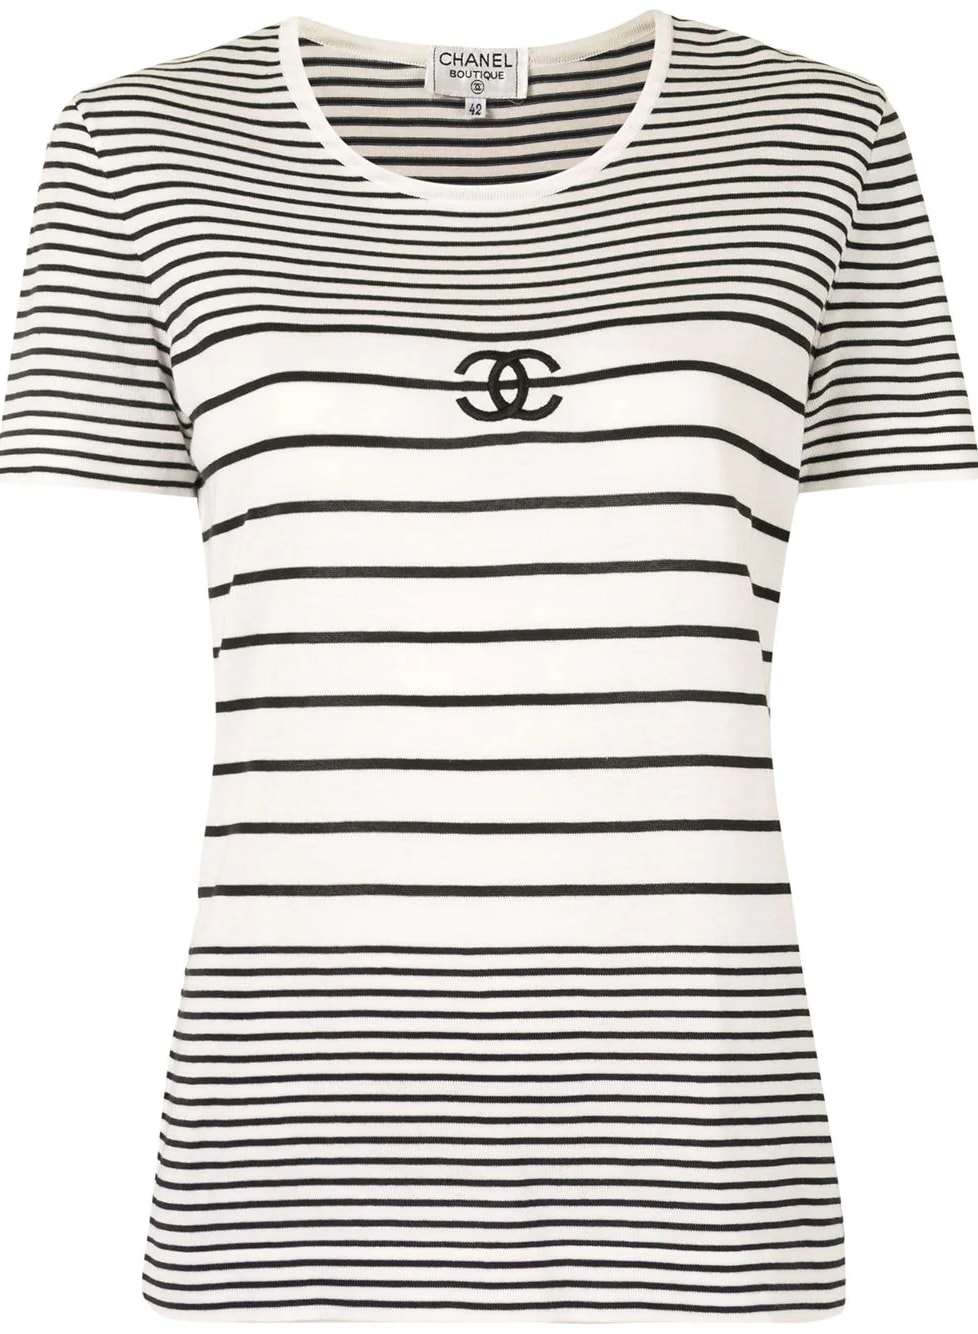 Chanel Pre-Owned CC striped knitted top